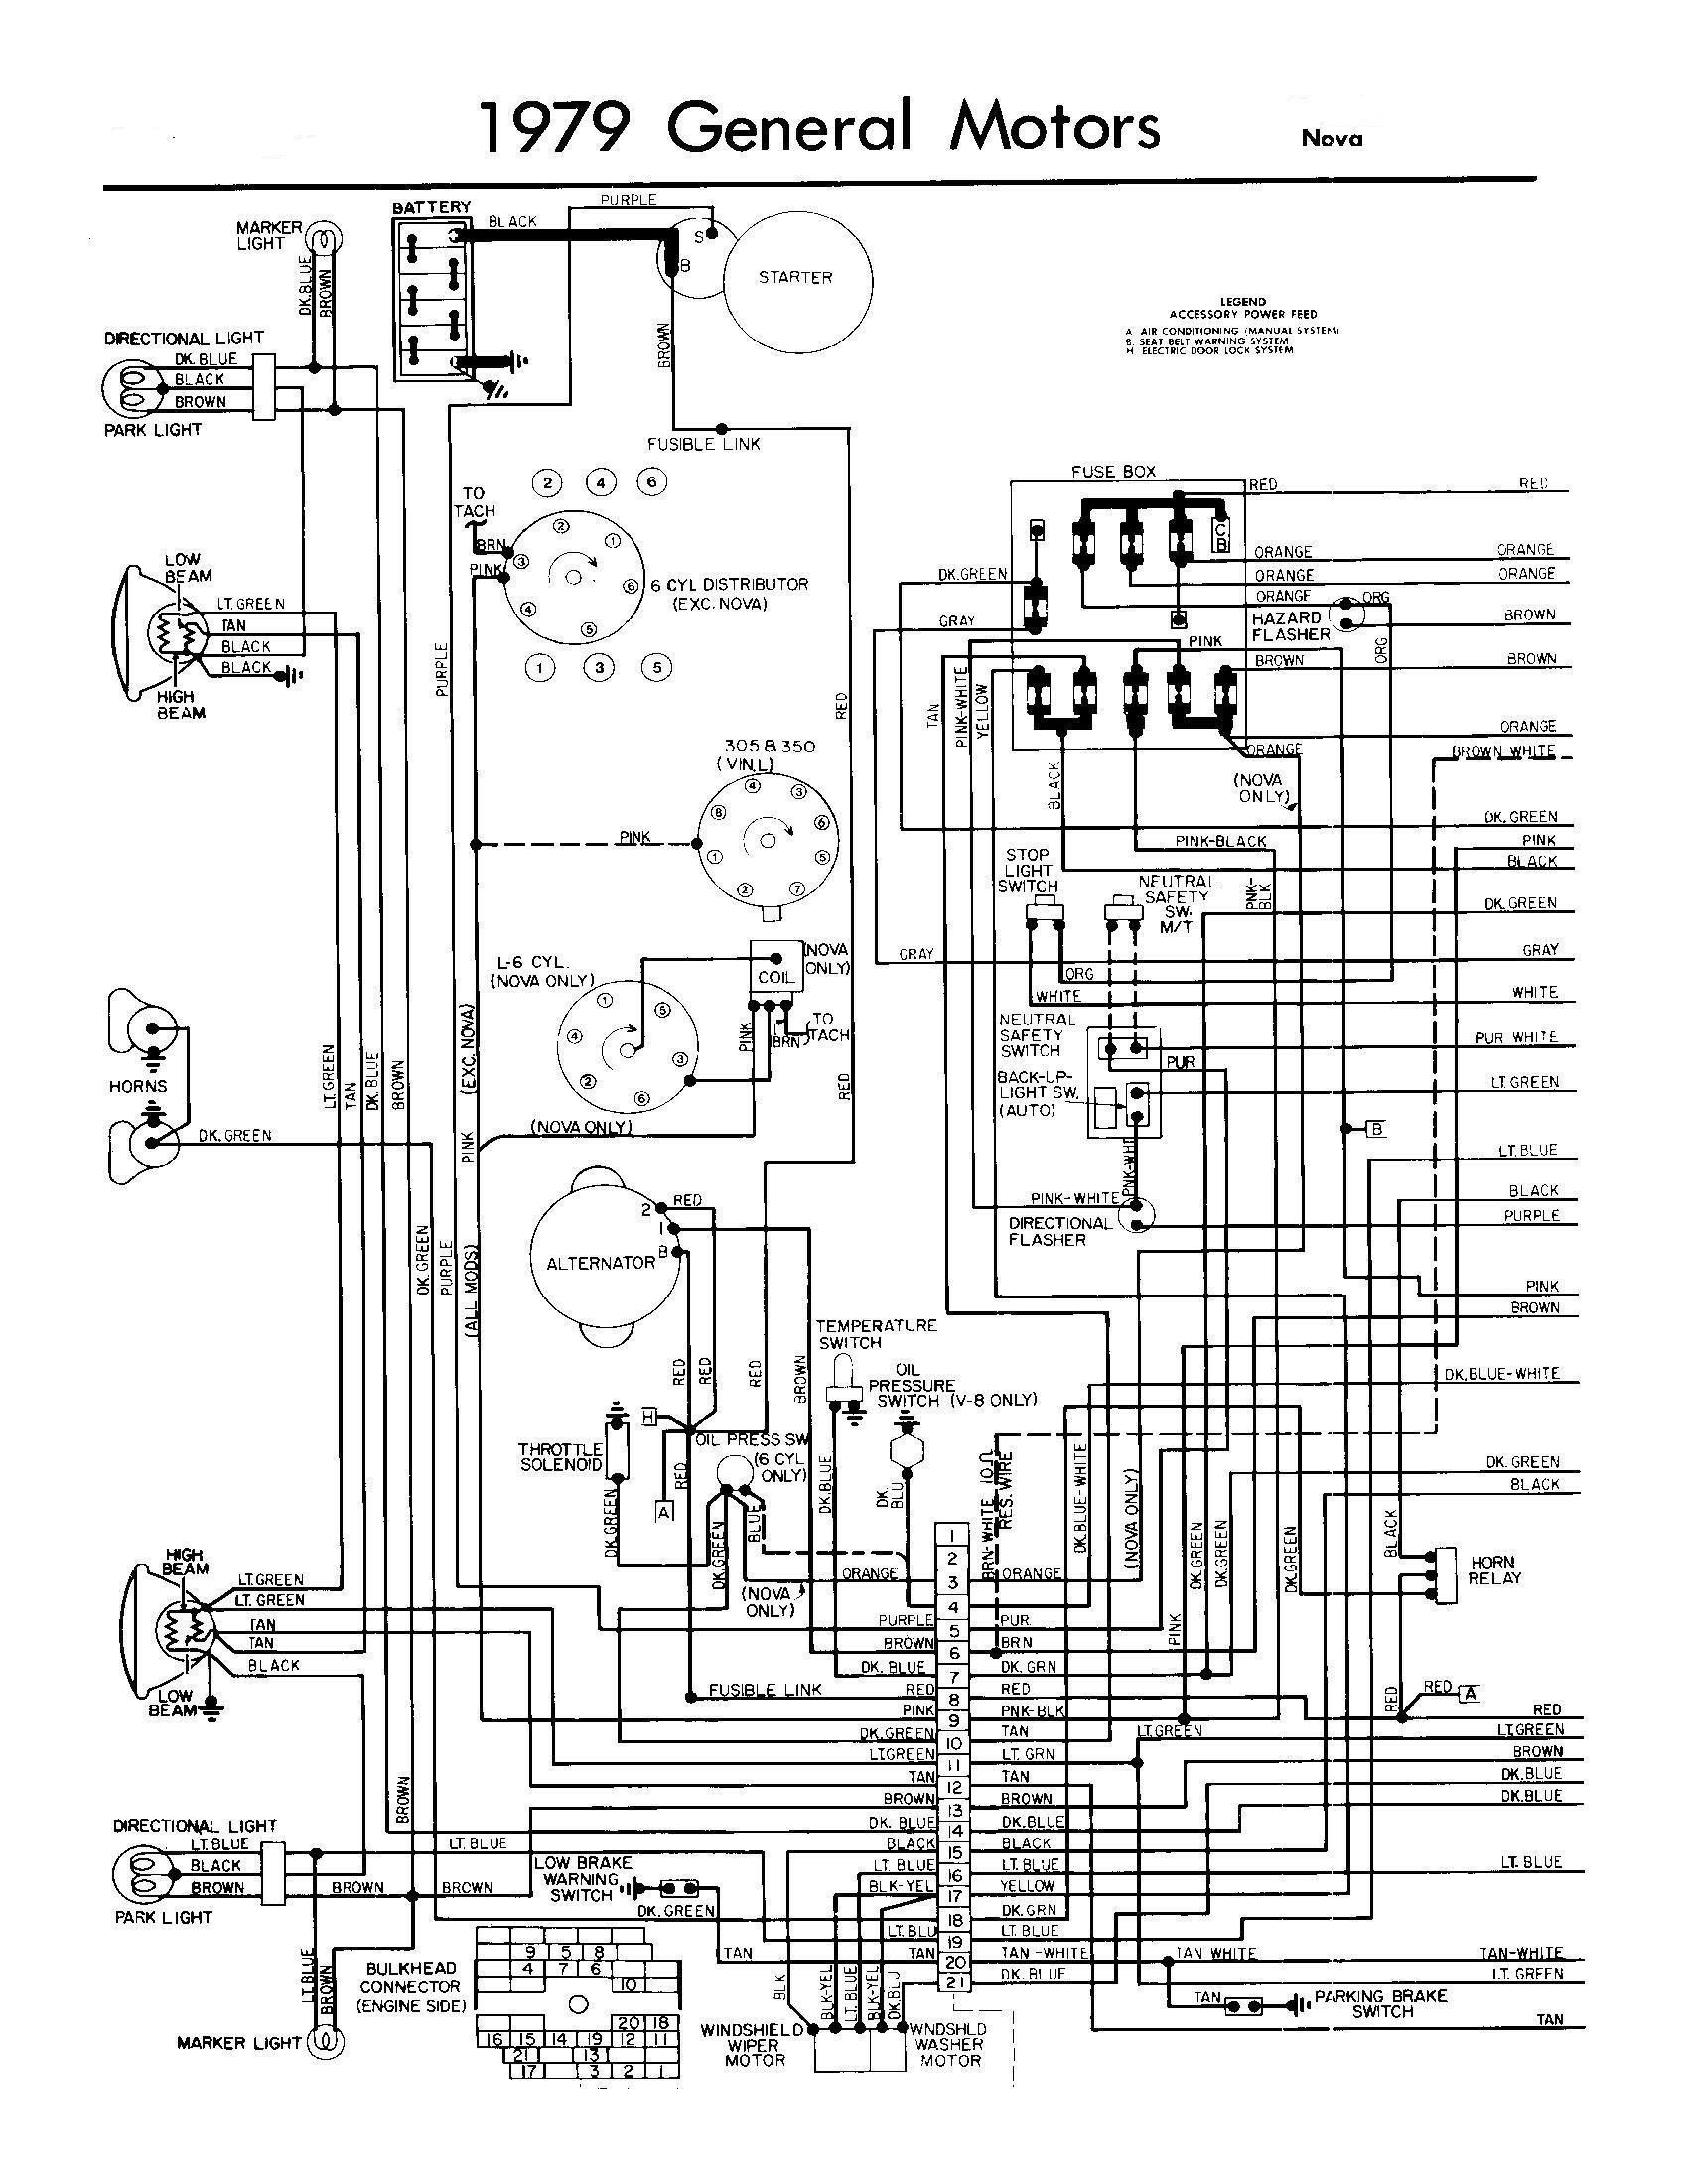 98 Ford Bronco Alternator Wiring - Wiring Diagrams DatabaseDiamond Car Service